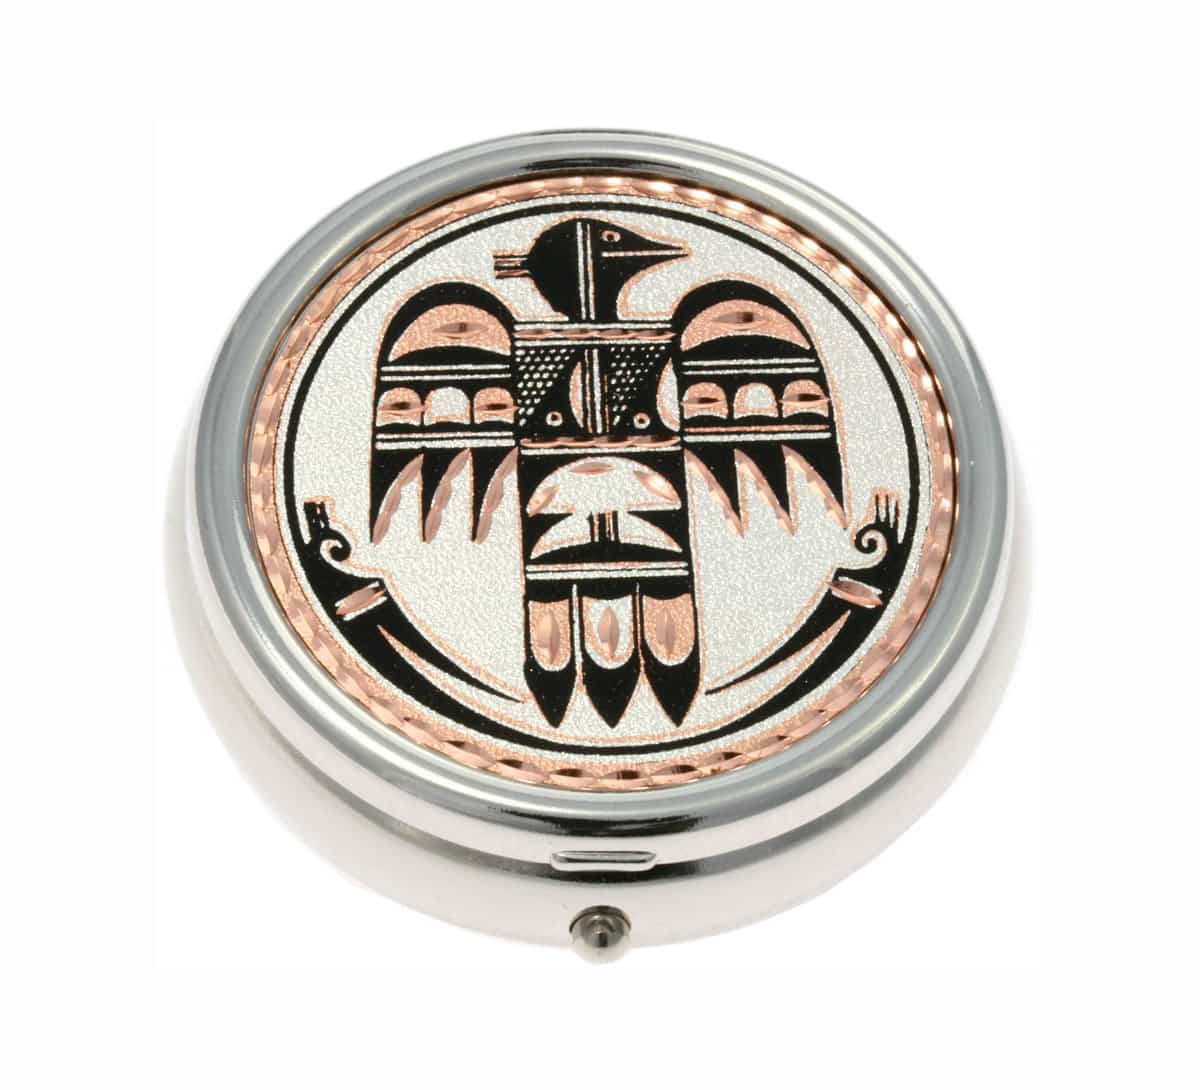 SW Native American Thunderbird Pill Boxes, Unique Handmade Gifts for Women